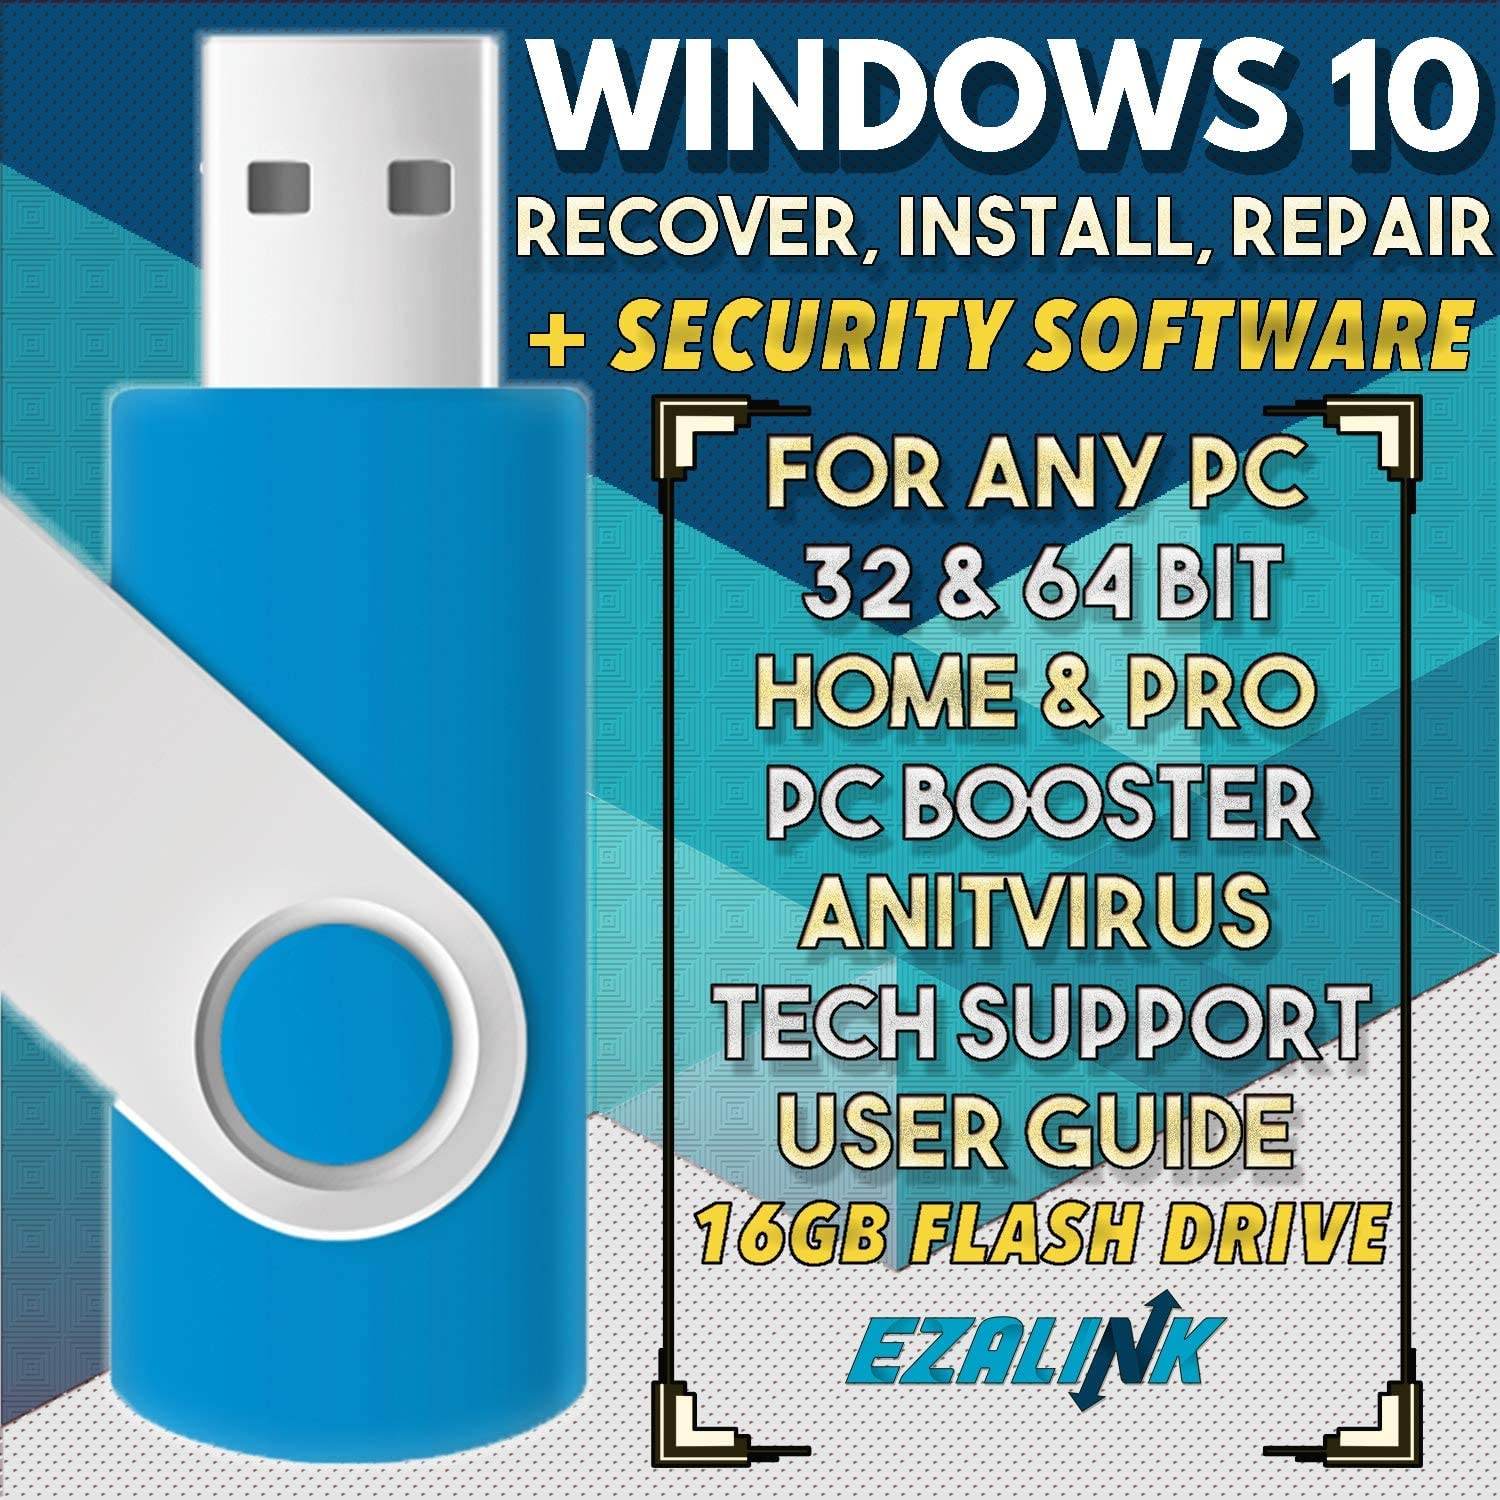 Ezalink USB for Windows 10 Repair Recovery Install Restore Boot Fix Flash Drive | 32 & 64 Bit Systems Home & Professional All Brands w/ AntiVirus and Support 81SZL3A2OfL